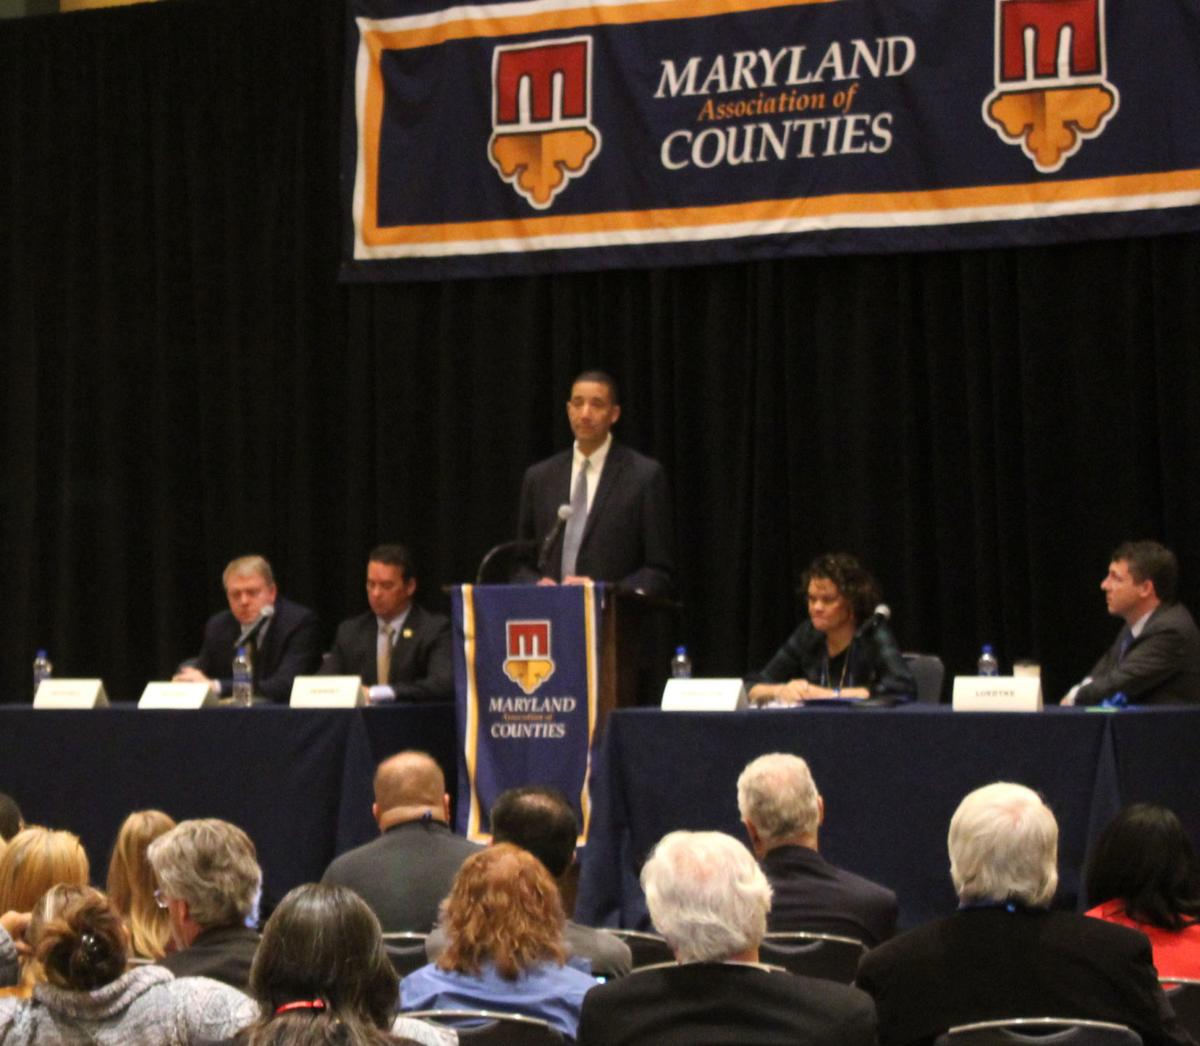 The Governor's Chief Legislative Officer Keiffer Mitchell addresses the Maryland Association of Counties earlier this month.